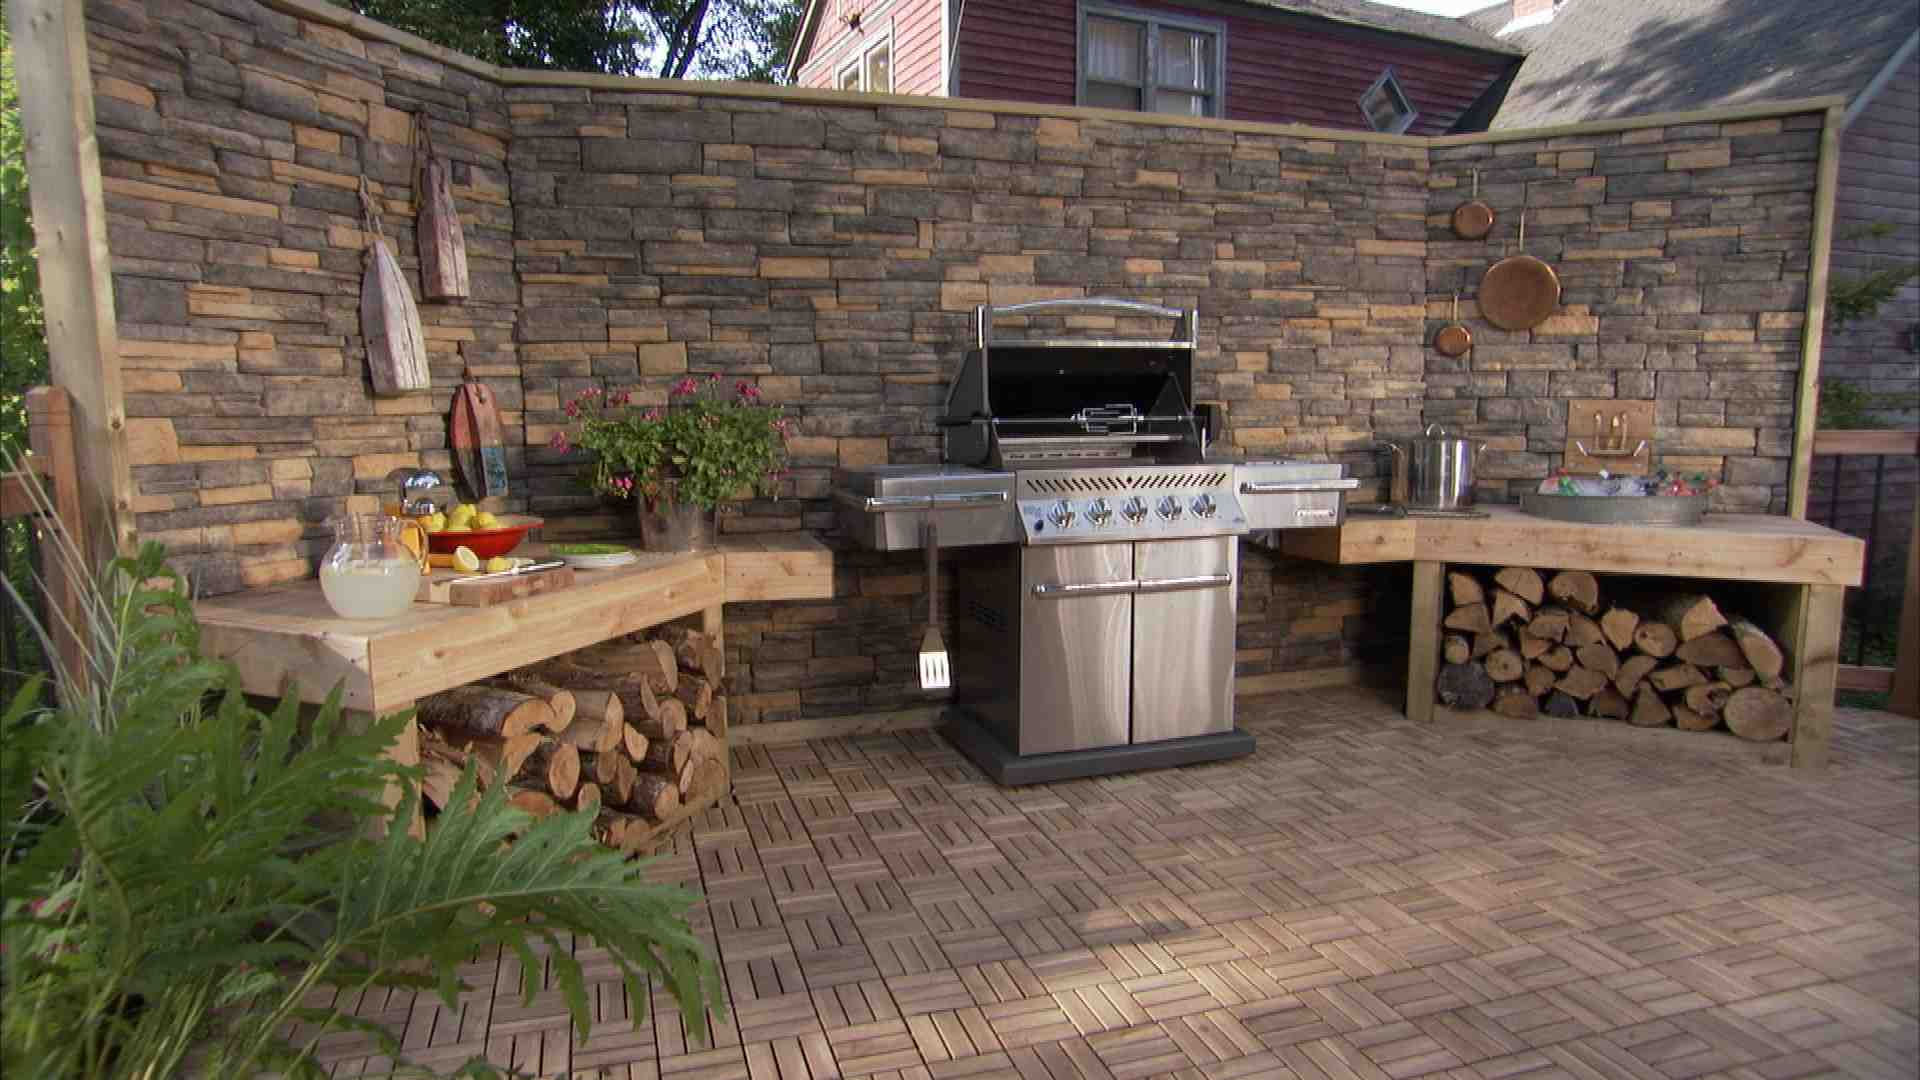 Attirant What A Great BBQ Area For A Labor Day Party! | Backyard Ideas | Pinterest |  Backyard Bbq, Labor Day And Backyards